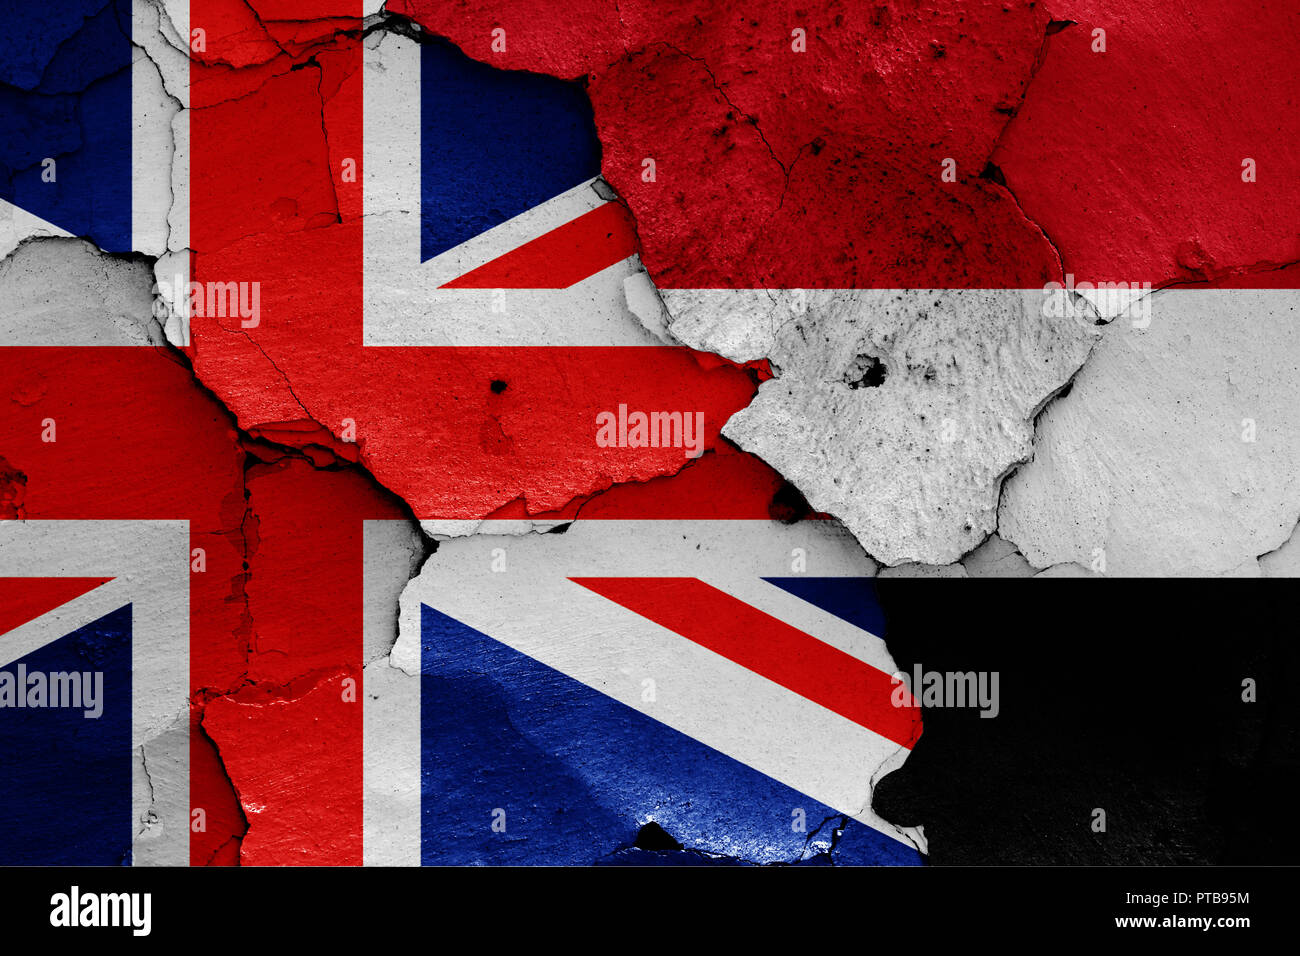 flags of UK and Yemen painted on cracked wall - Stock Image